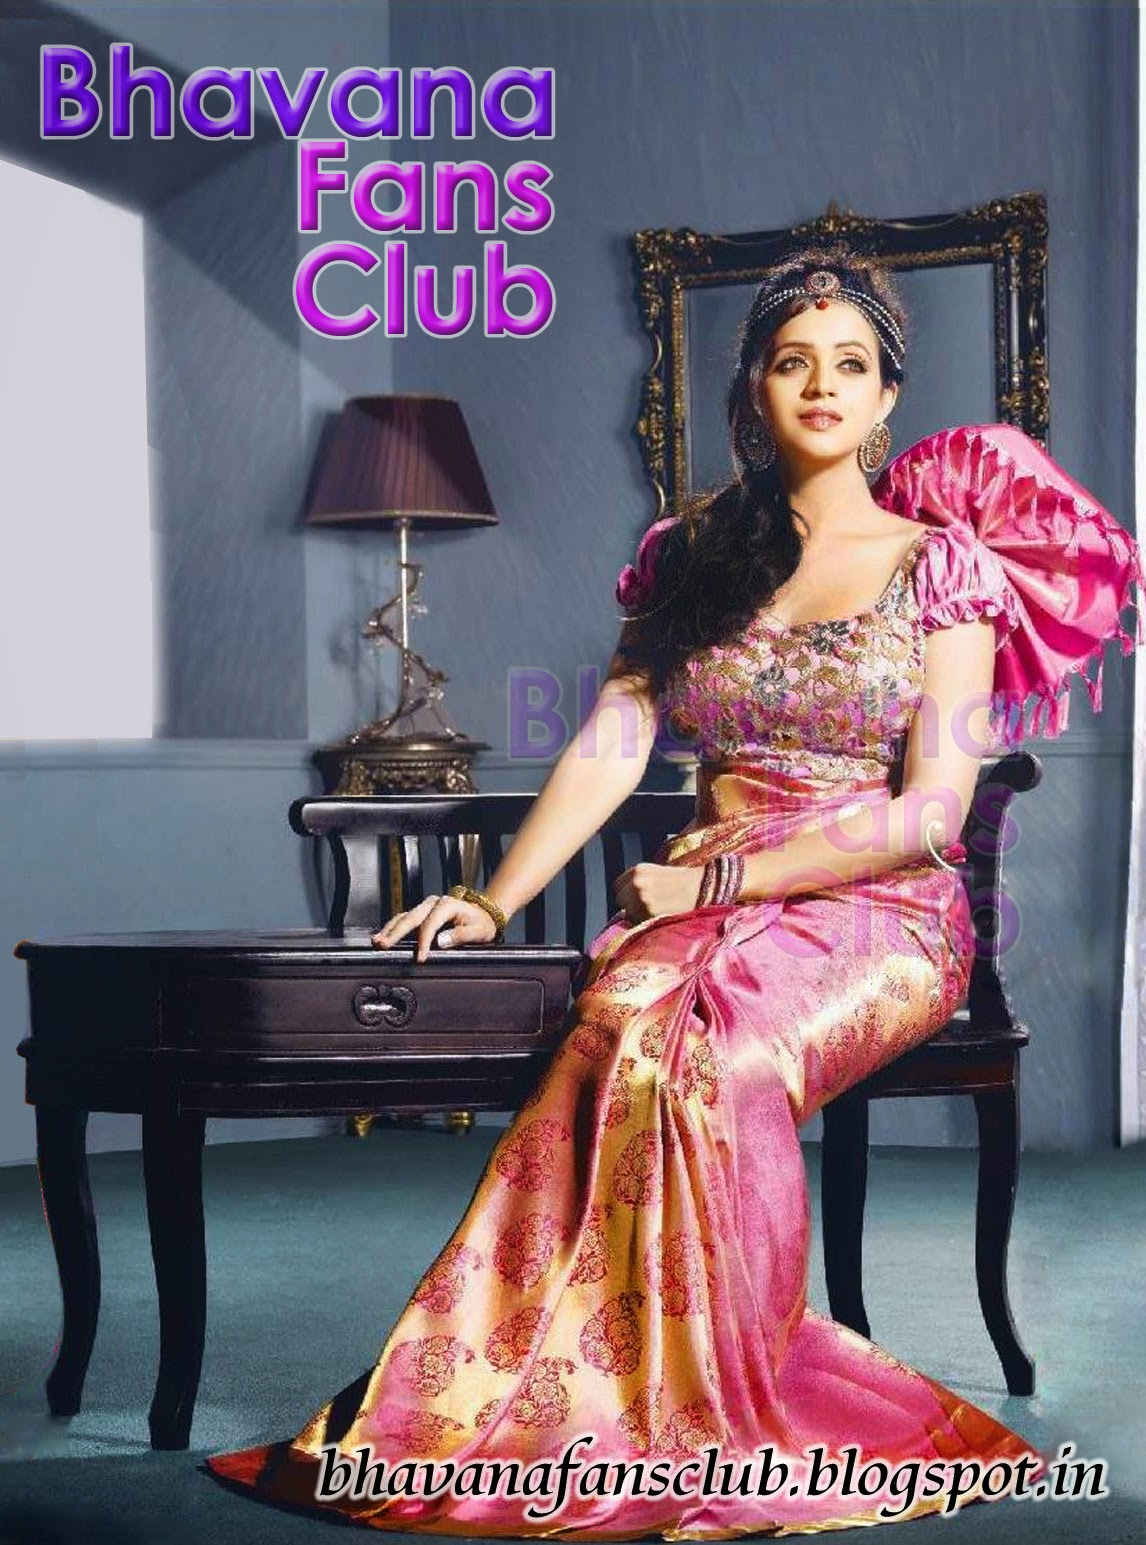 Bhavana on abhinava neostyle saree shoot actress bhavana fans club posted by smart blogger altavistaventures Image collections